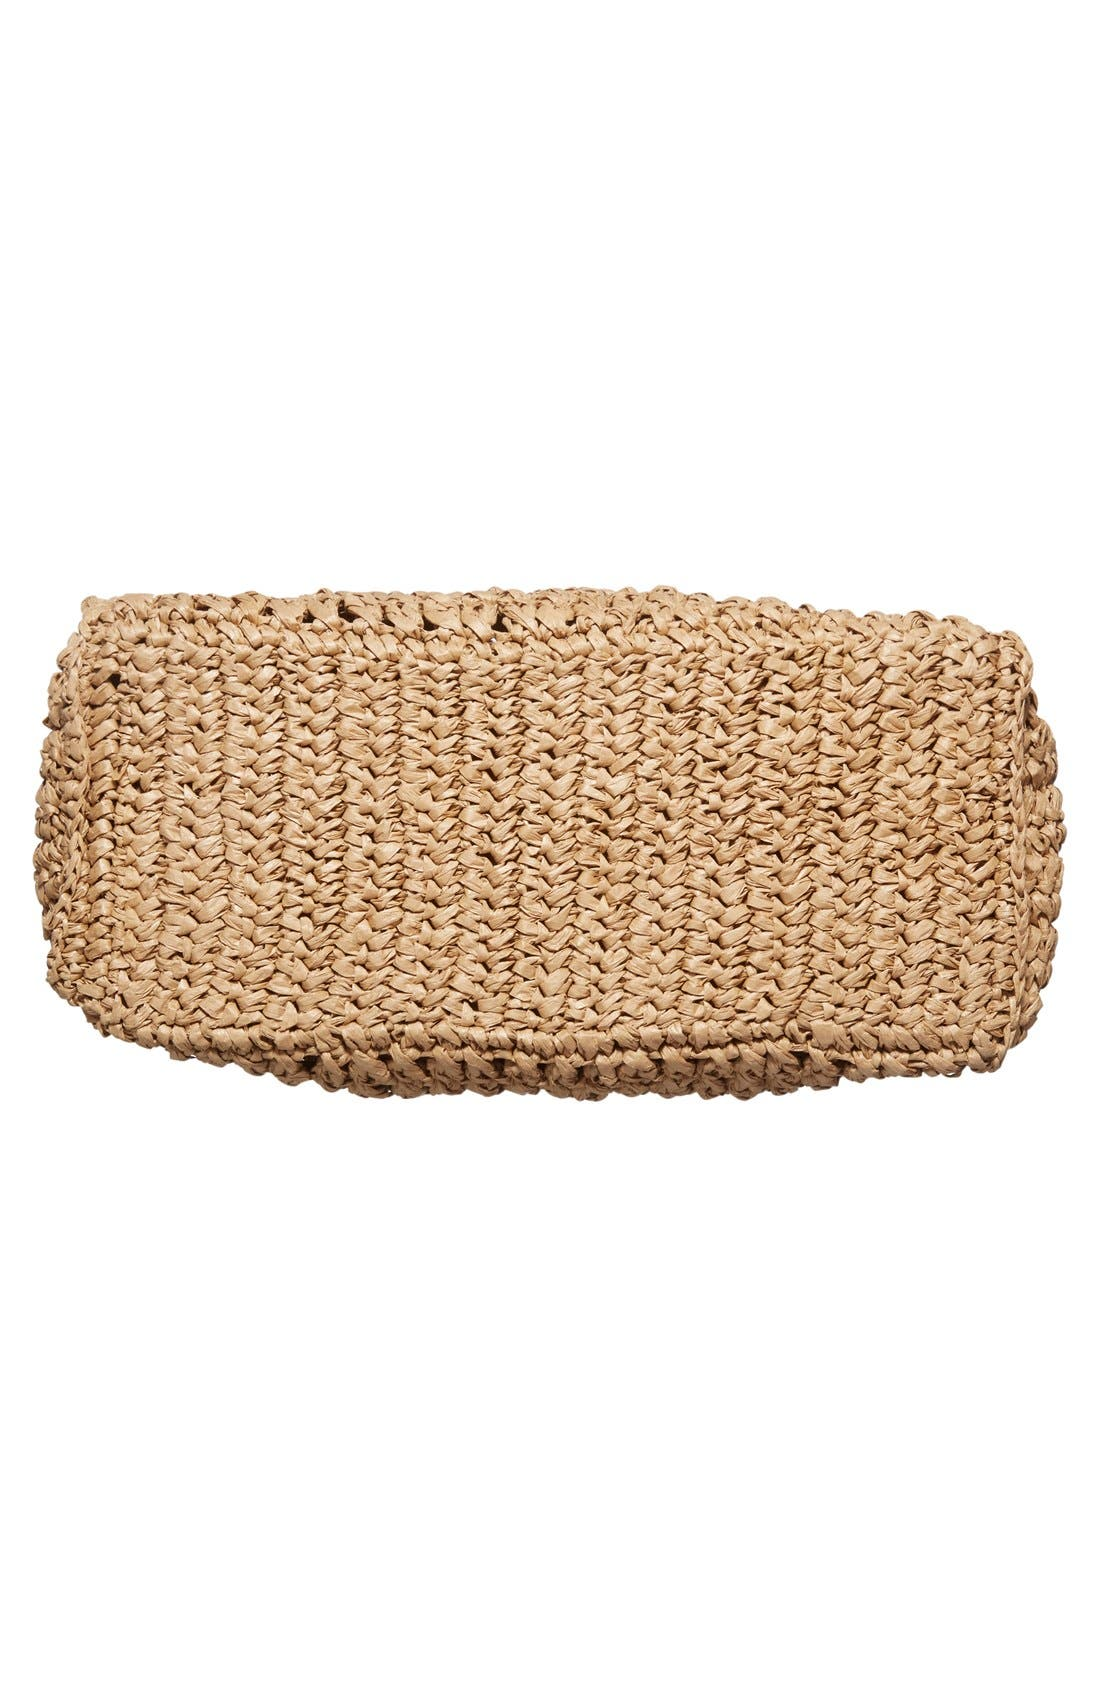 Woven Straw Tote,                             Alternate thumbnail 6, color,                             Natural